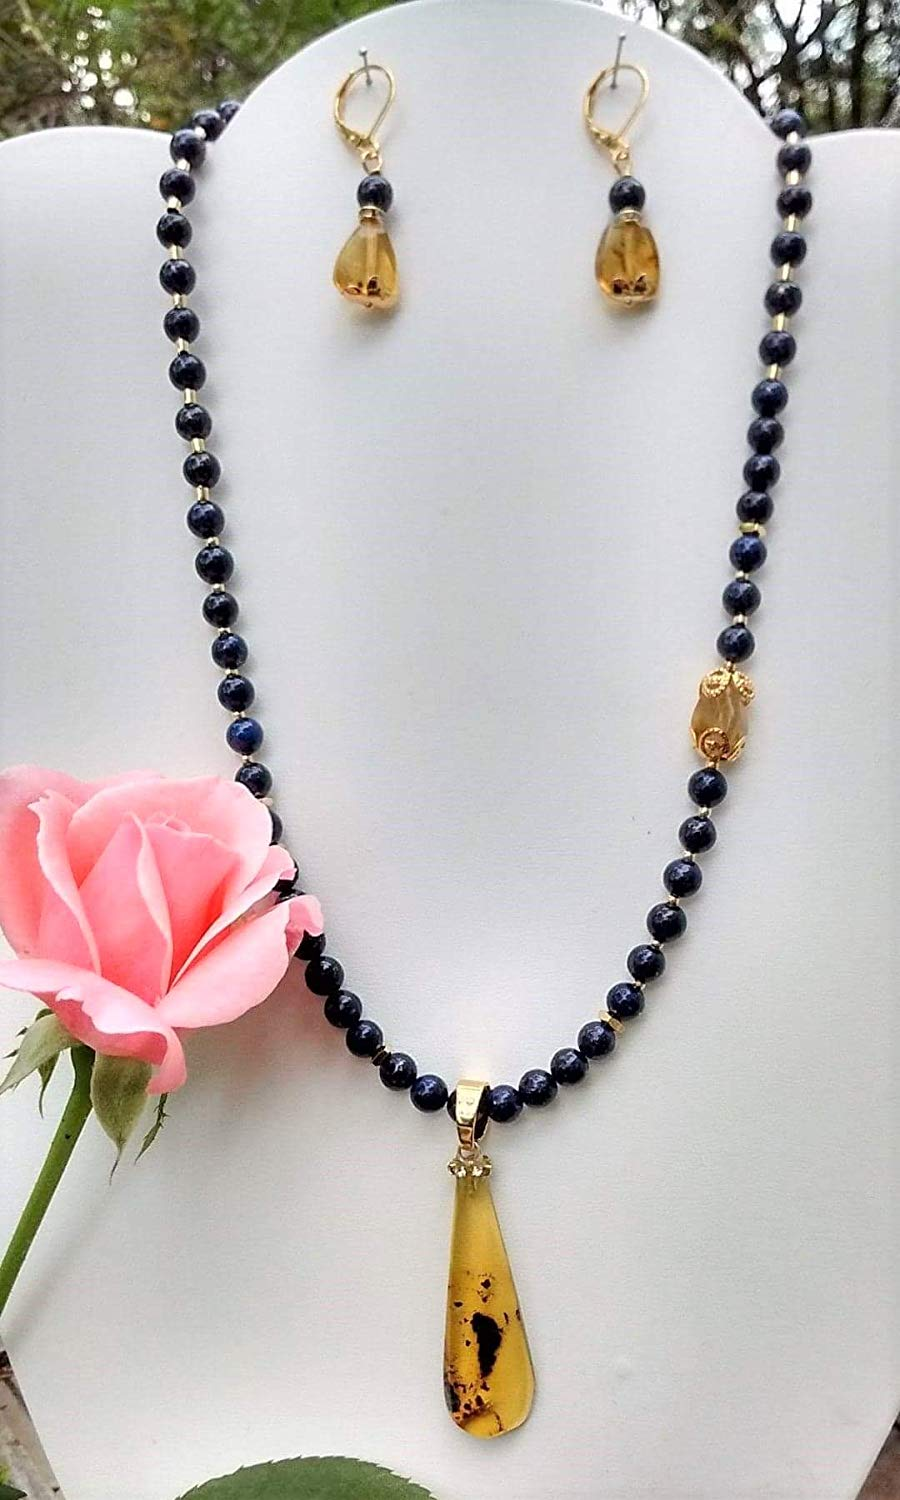 Handmade, Gemstone, Necklace, lapis lazuli, Chiapas amber. Include gold plated earrings